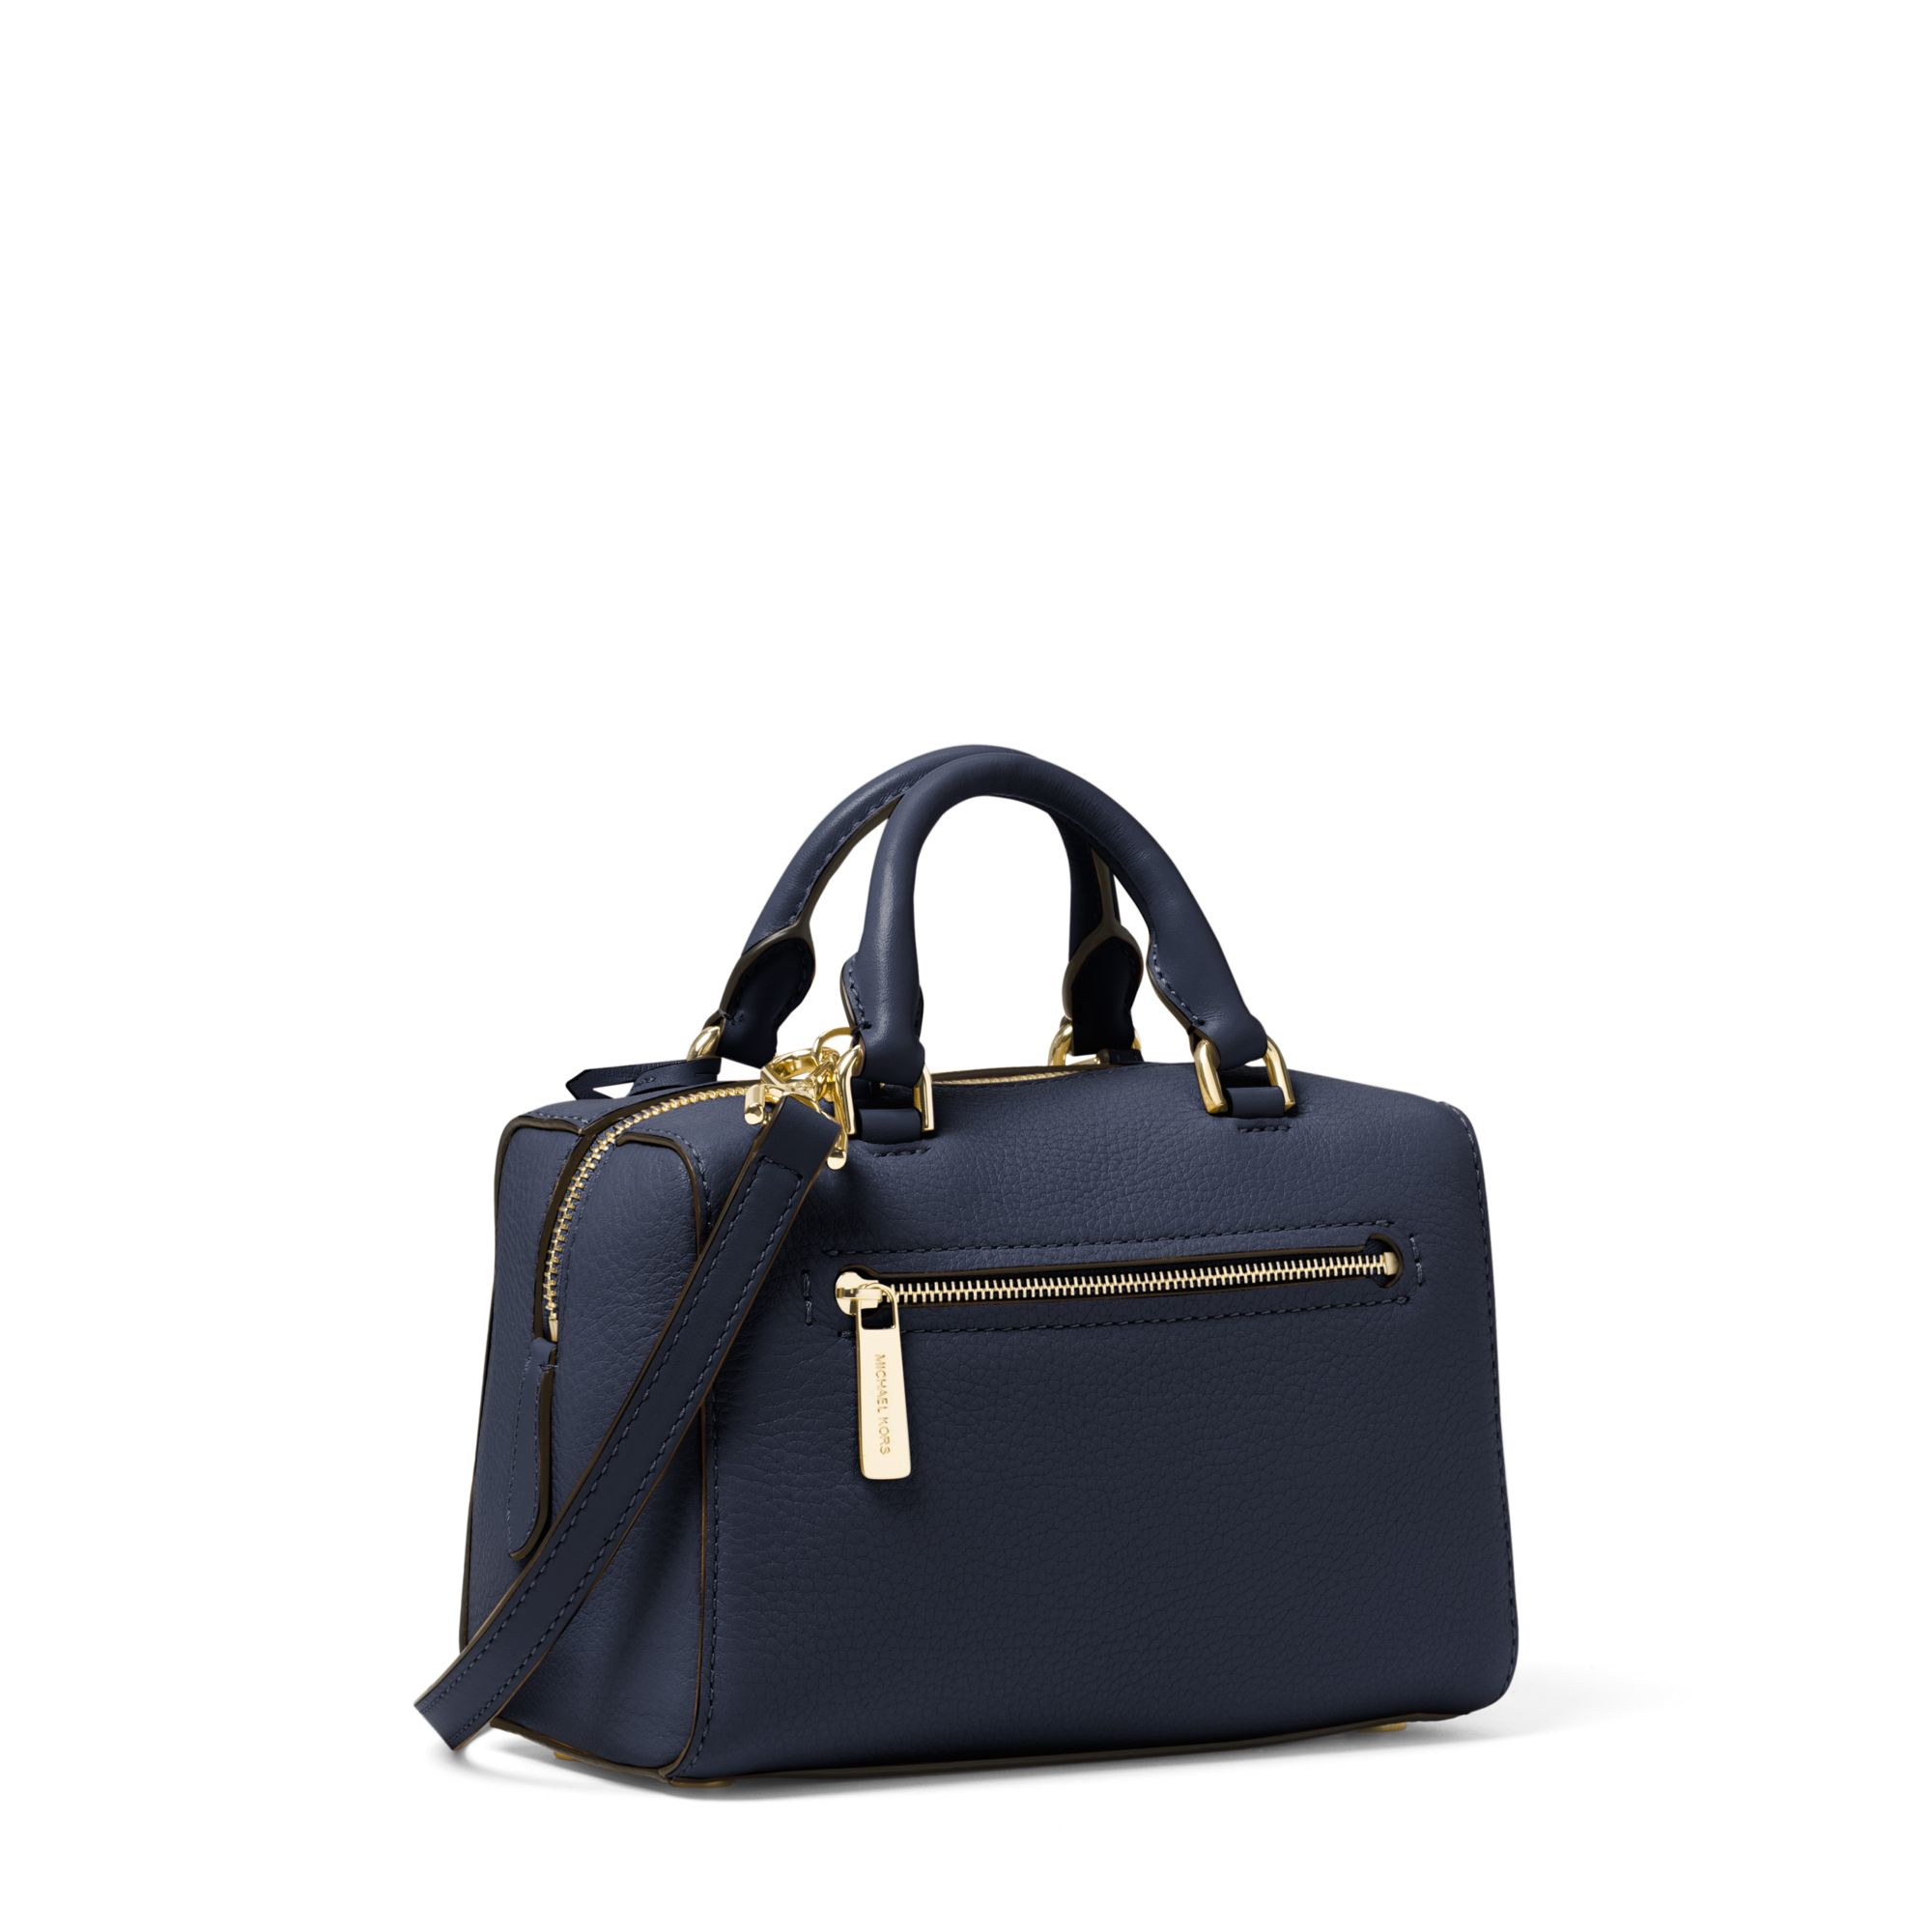 26923dbbbe84 Michael Kors Kirby Extra-small Leather Satchel in Blue - Lyst